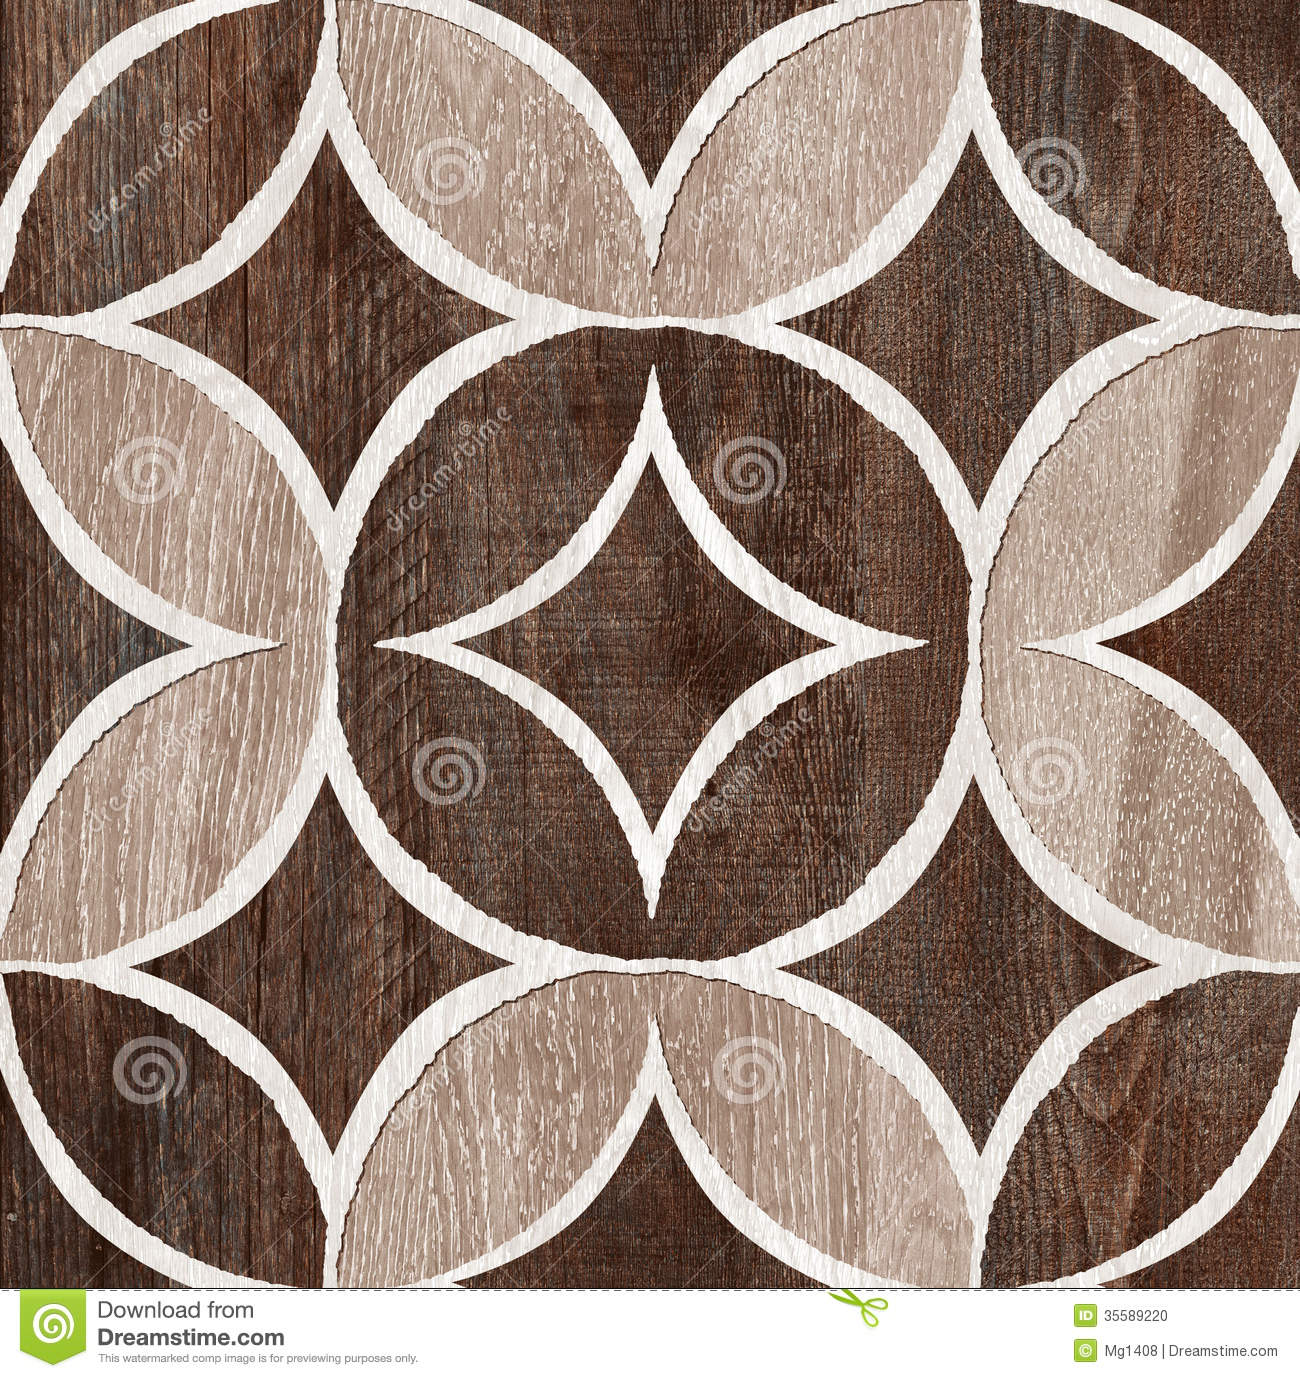 Wood decor texture stock photo image 35589220 for Wood decoration patterns